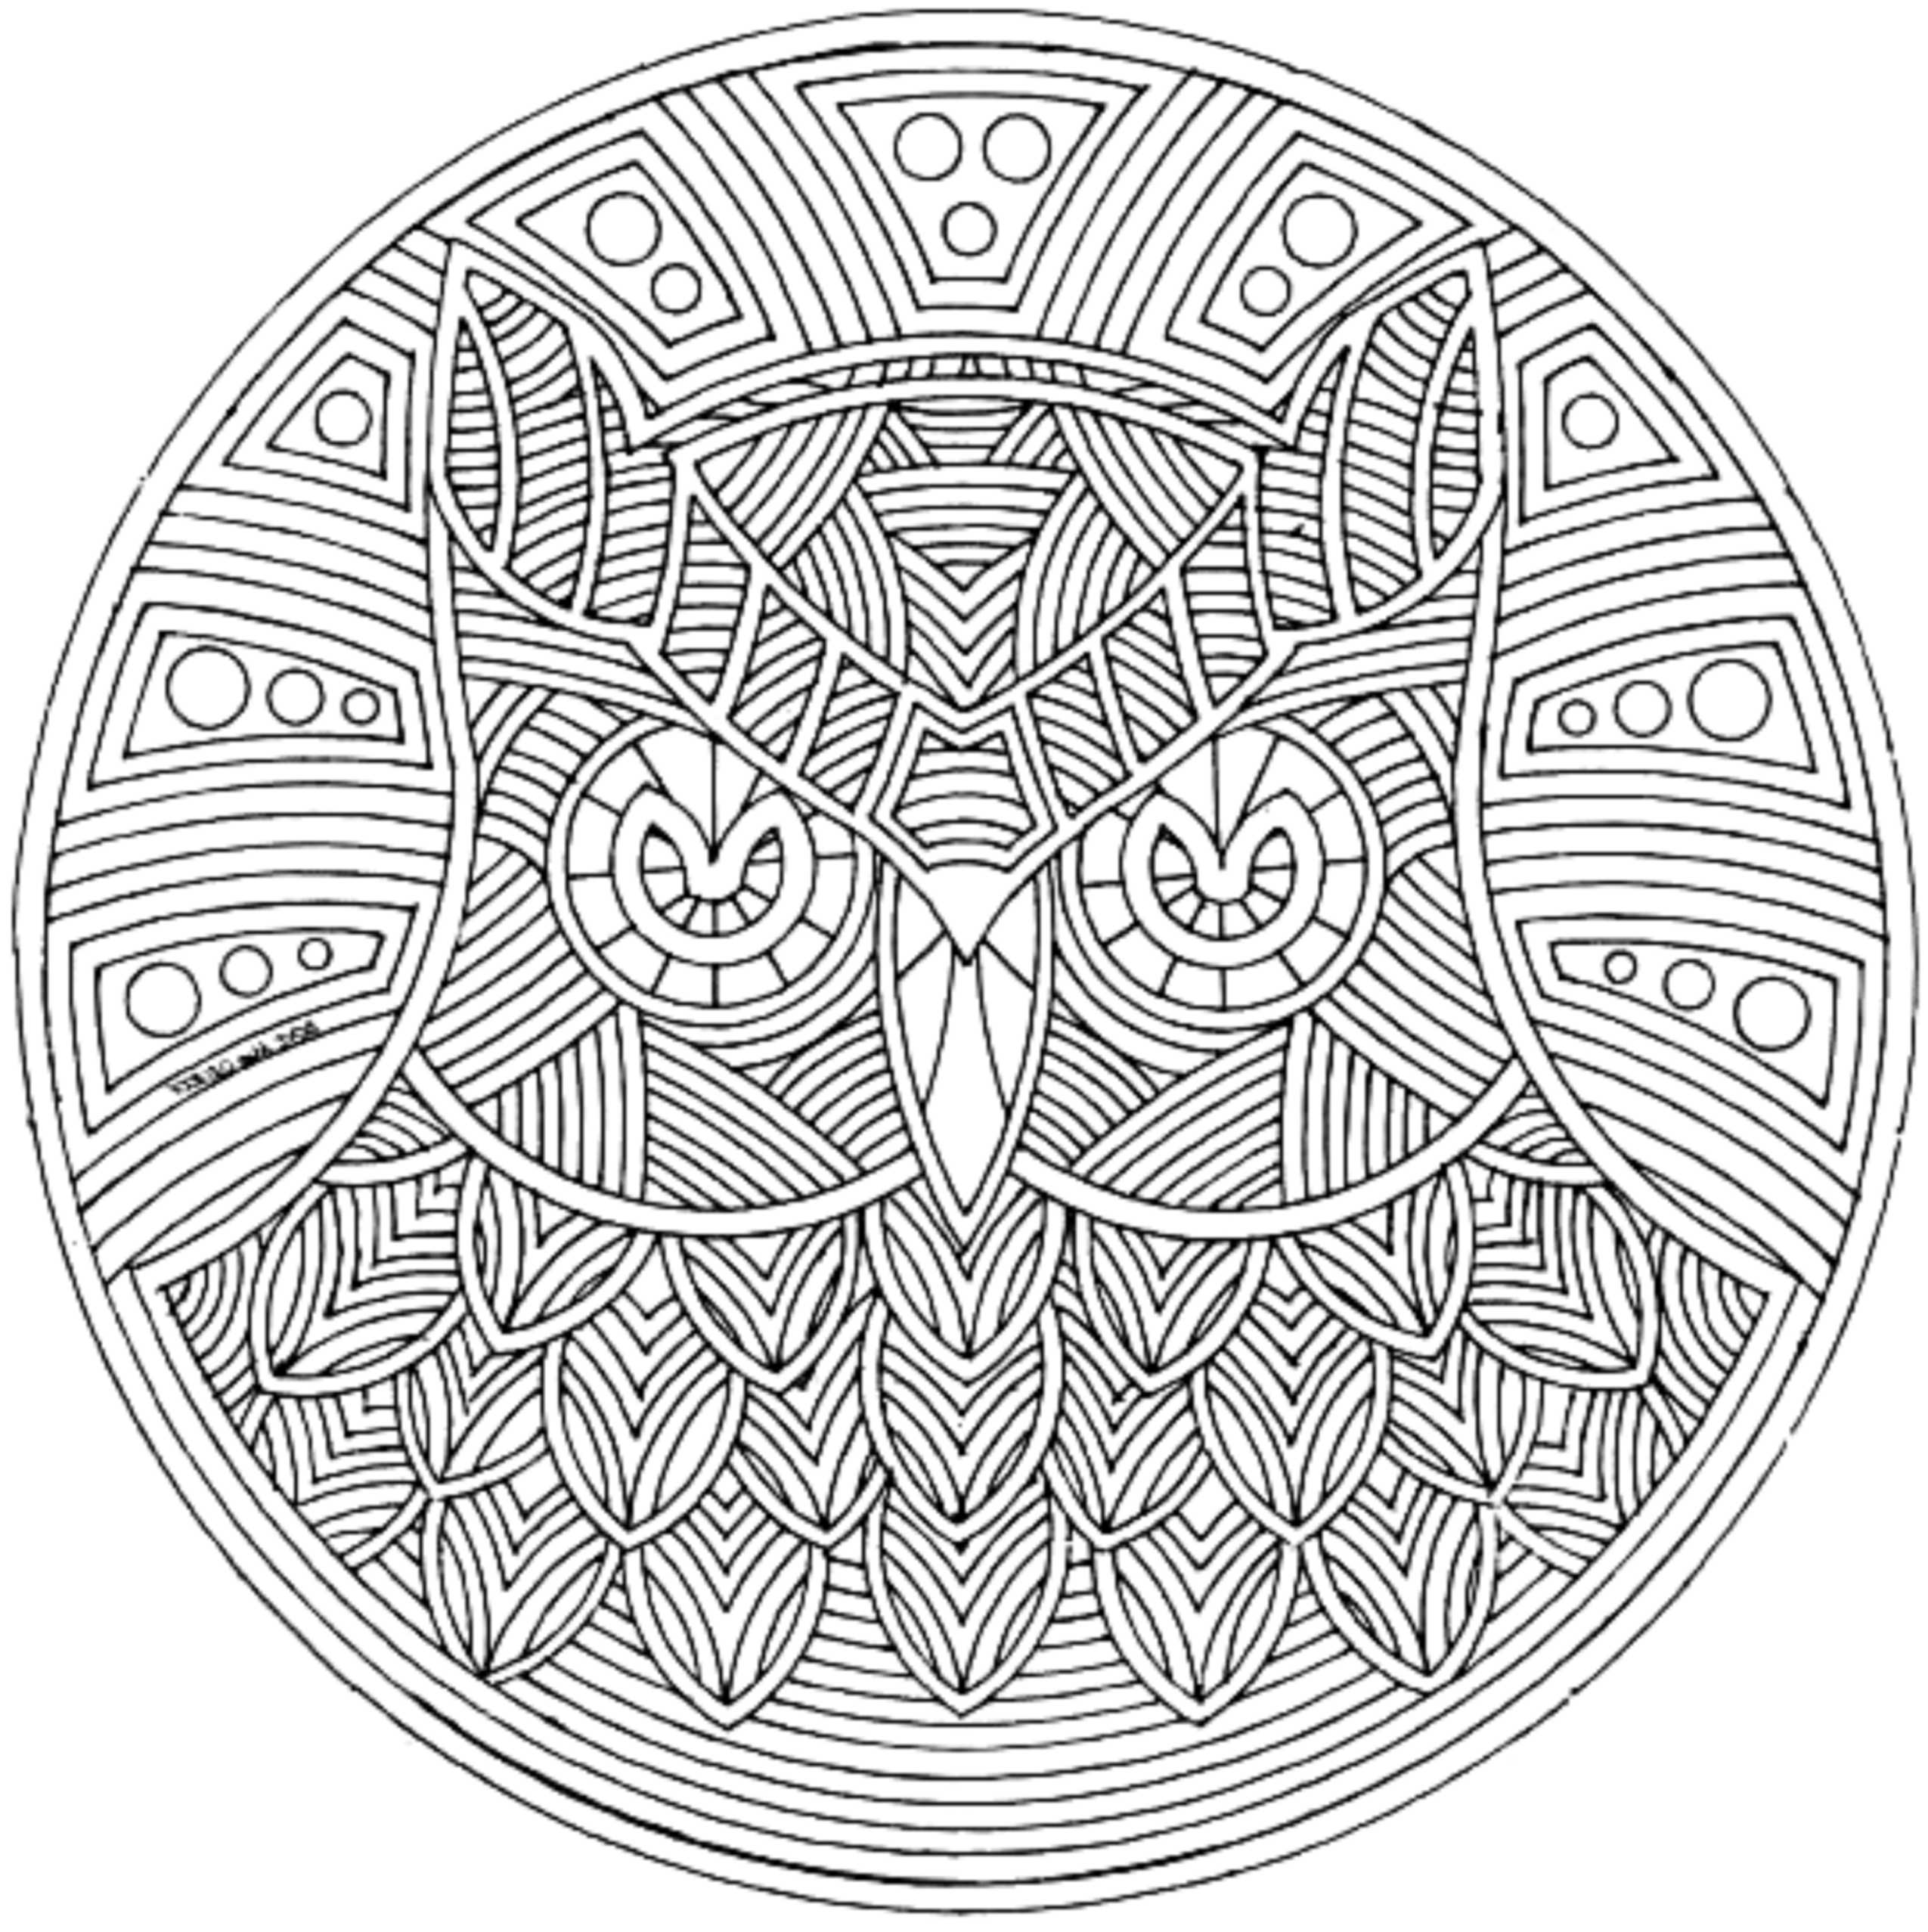 Uncategorized Complex Coloring Page print download complex coloring pages for kids and adults owl